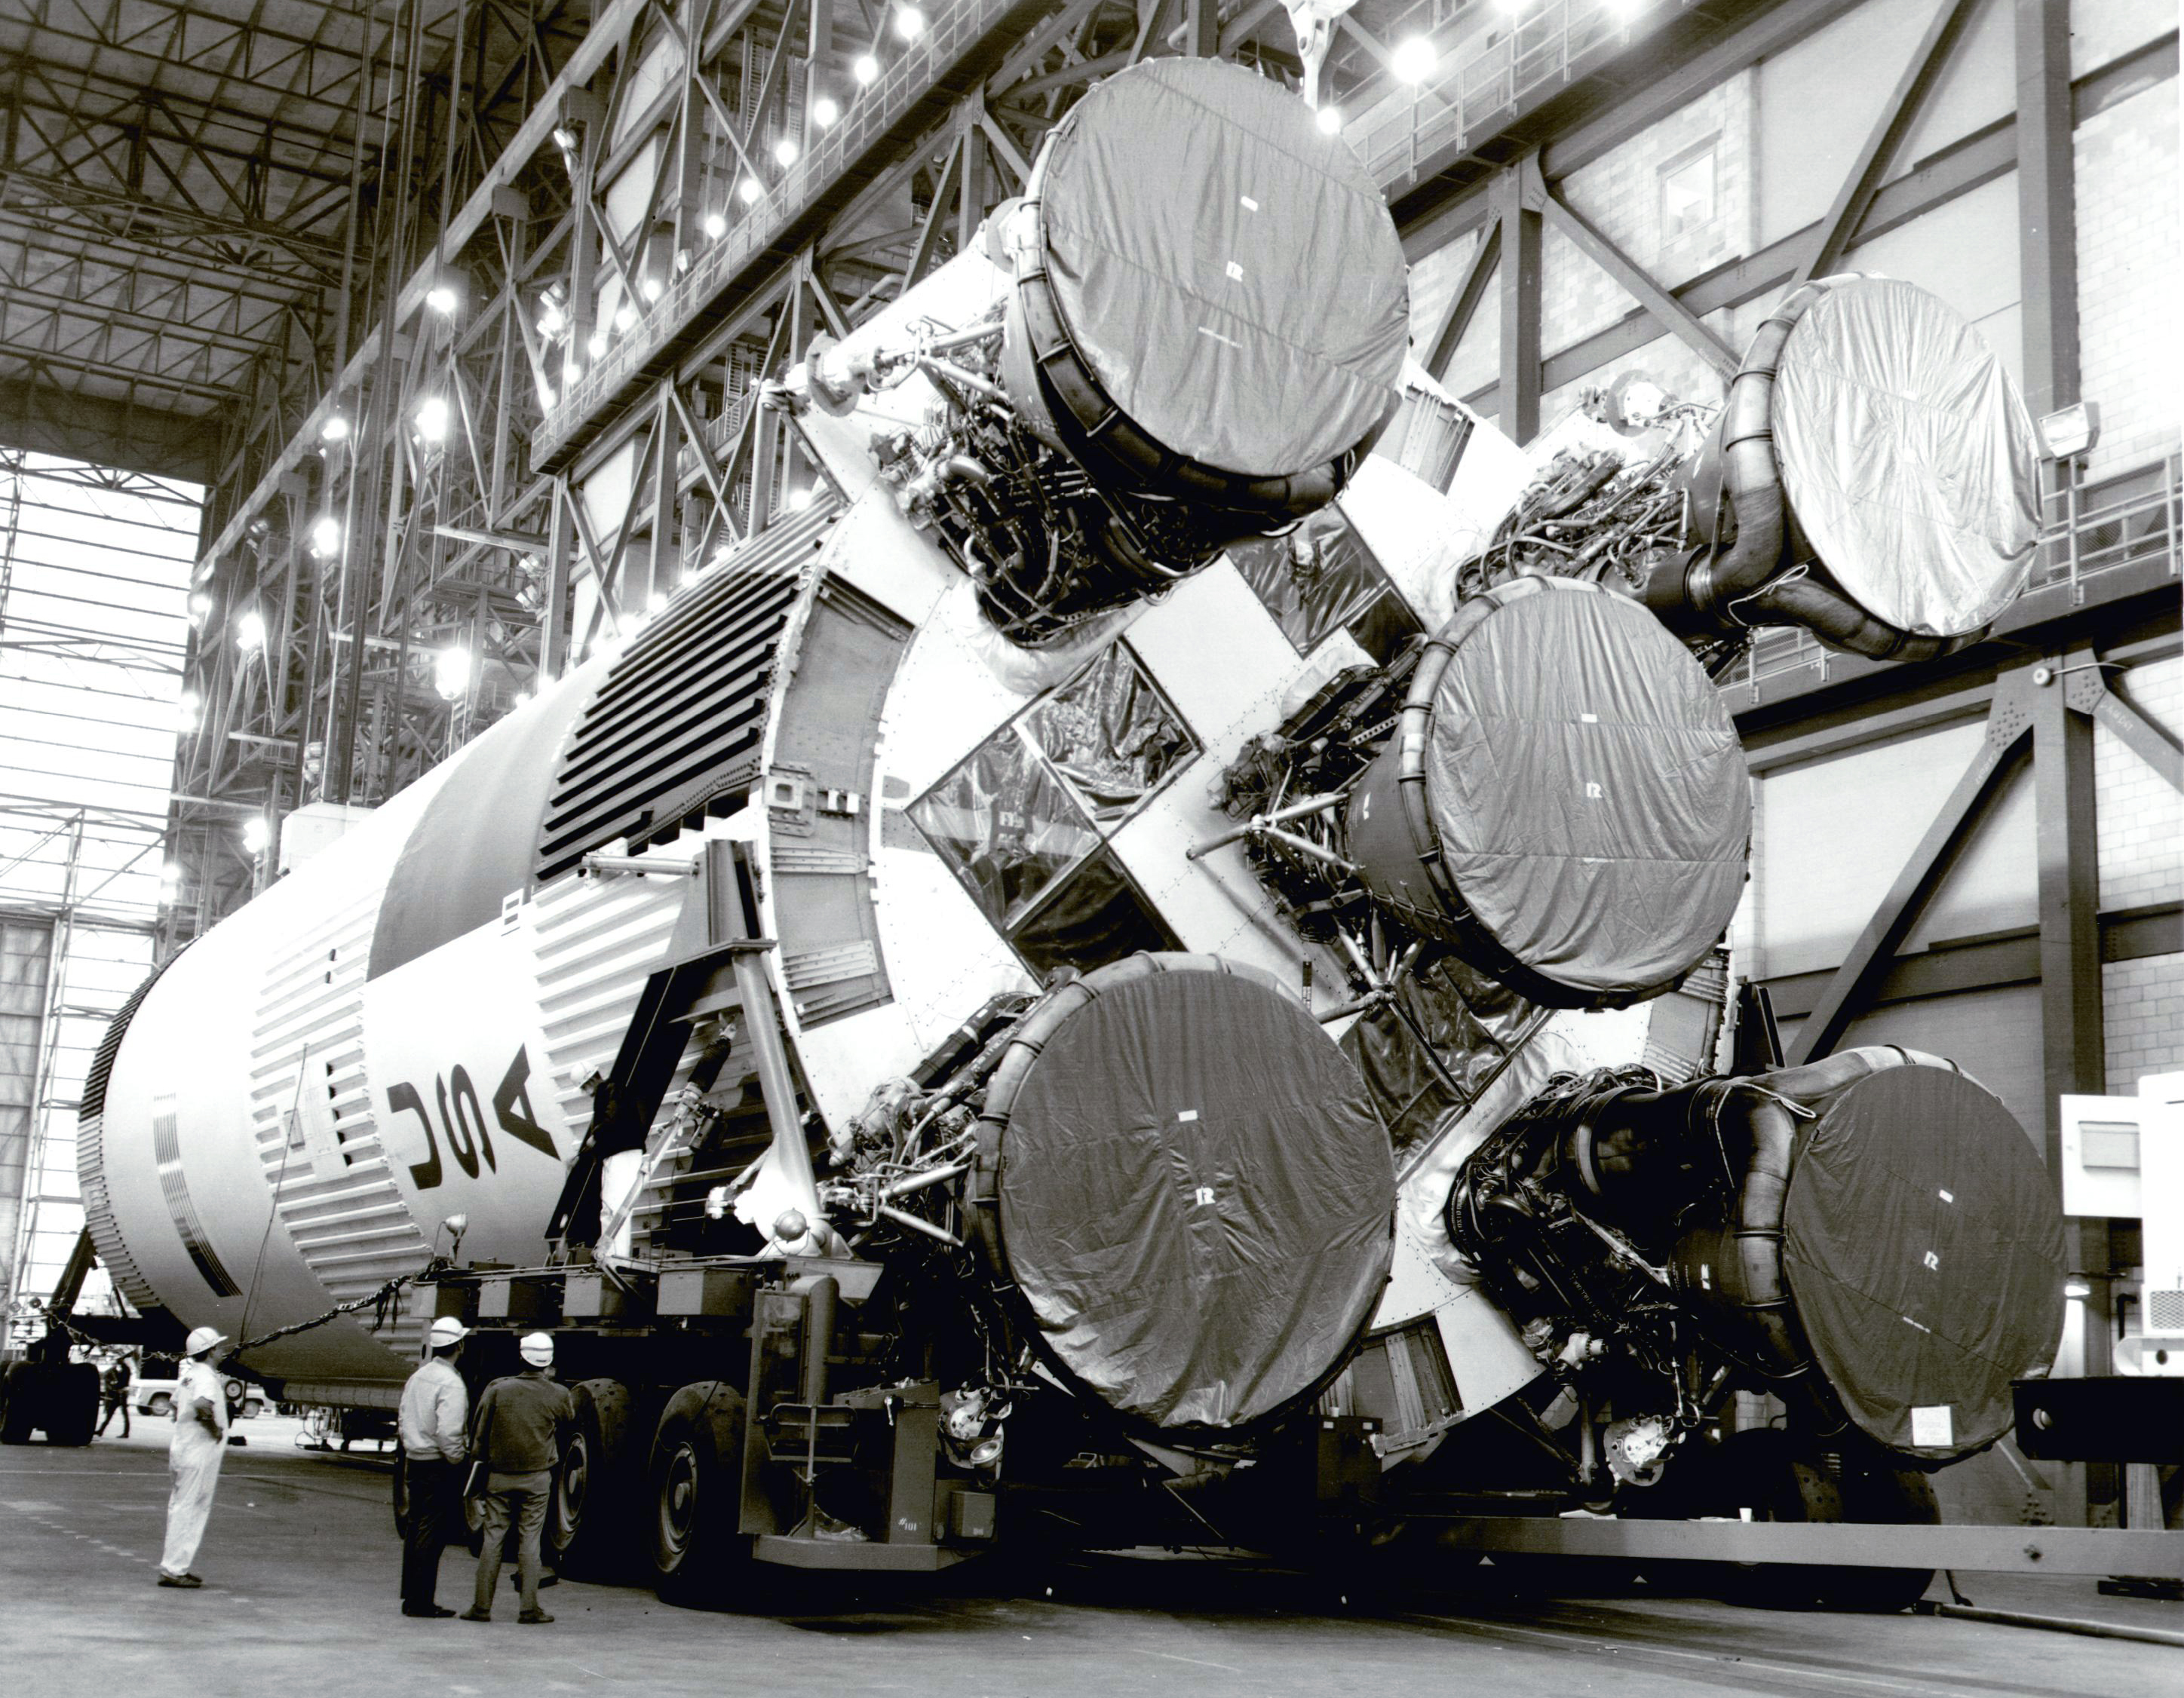 Saturn V on its side